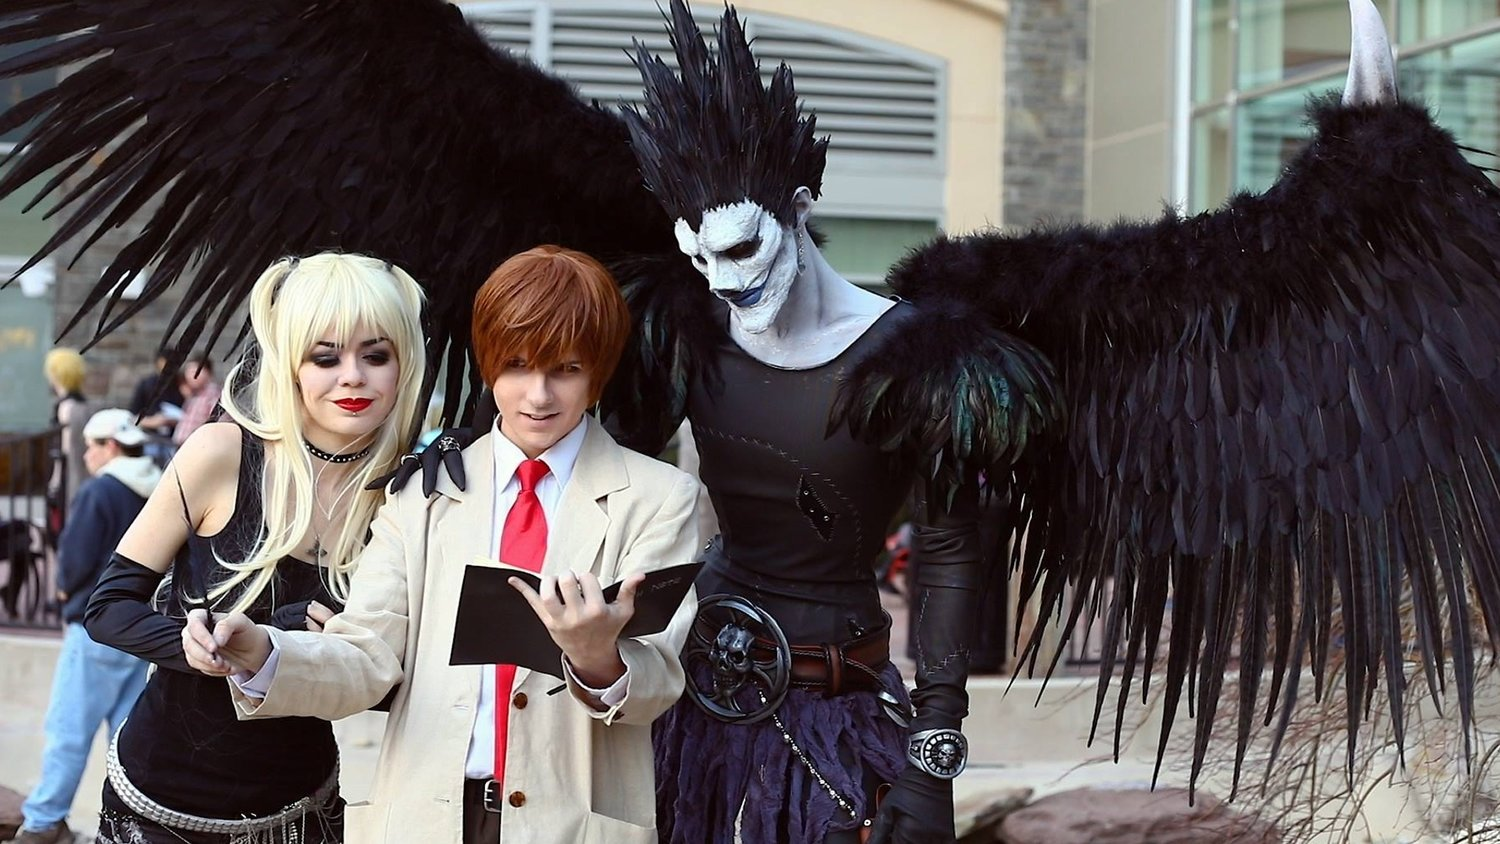 The Wicked Awesome Cosplay of Katsucon 2017 Showed Off in Two Great Videos